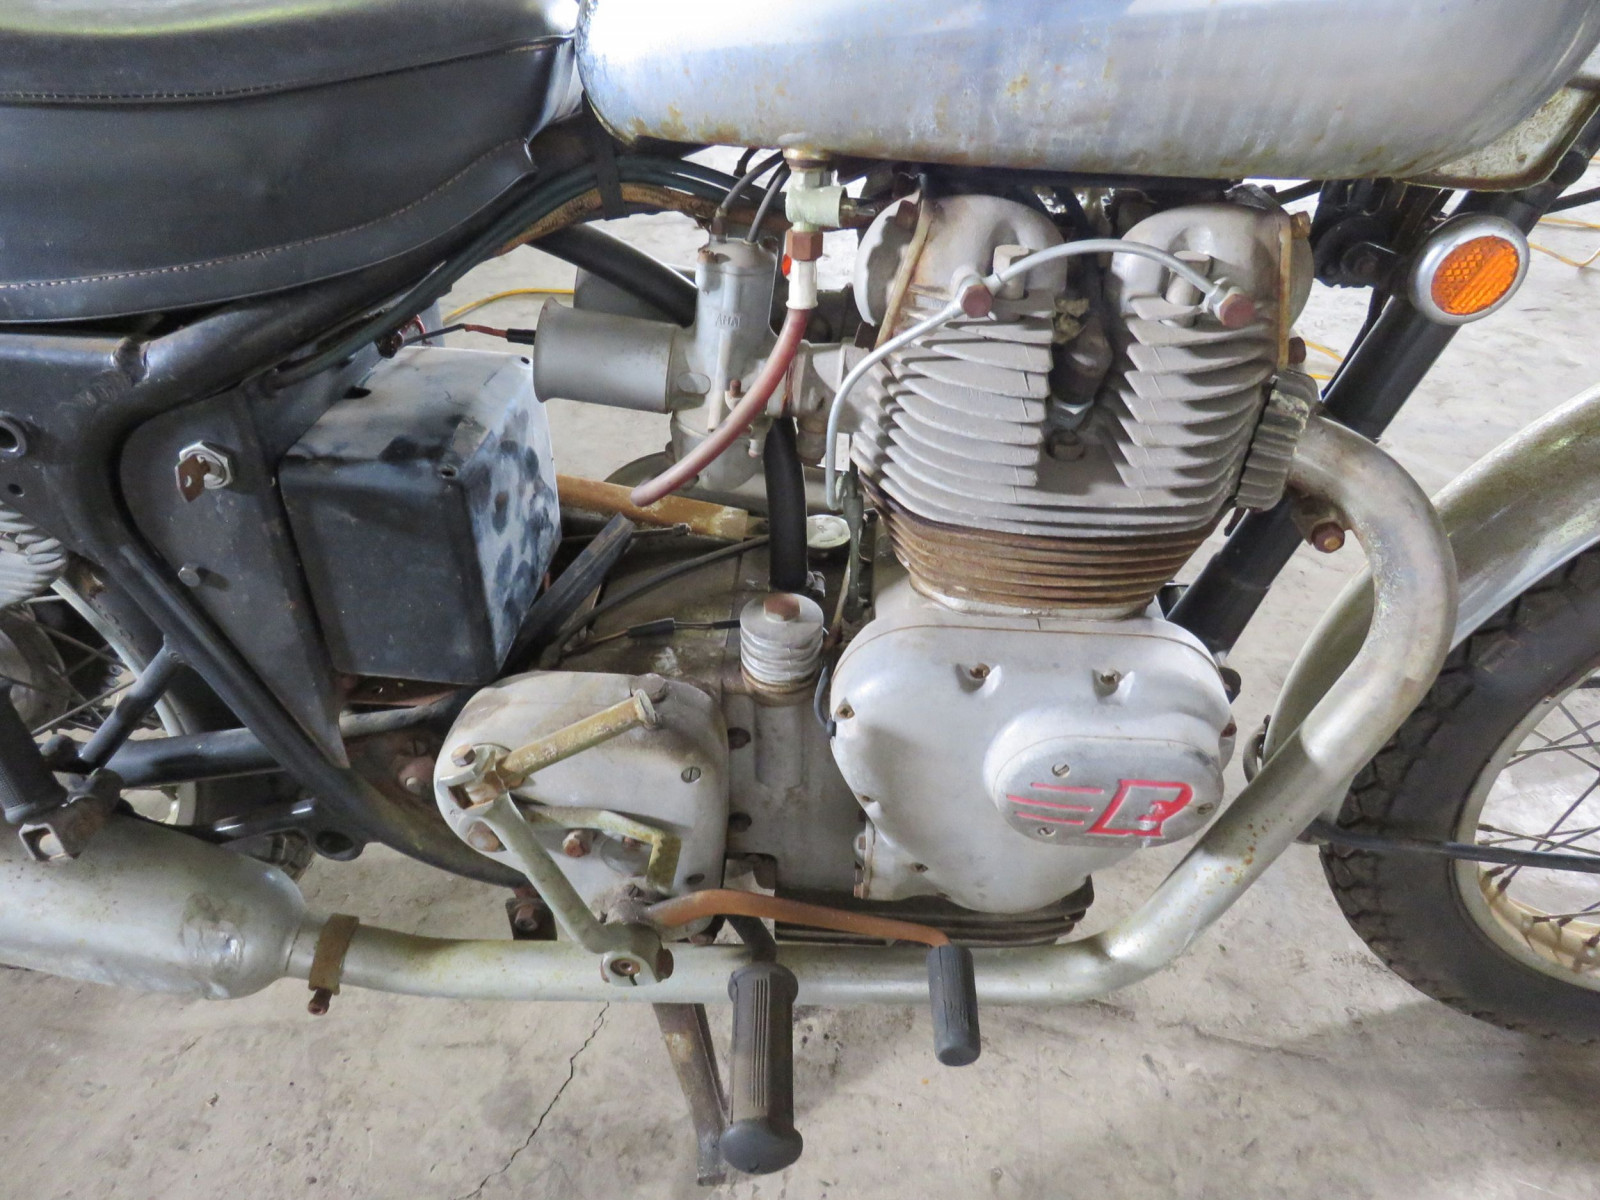 1969 Royal Enfield Series 2 Interceptor Motorcycle - Image 7